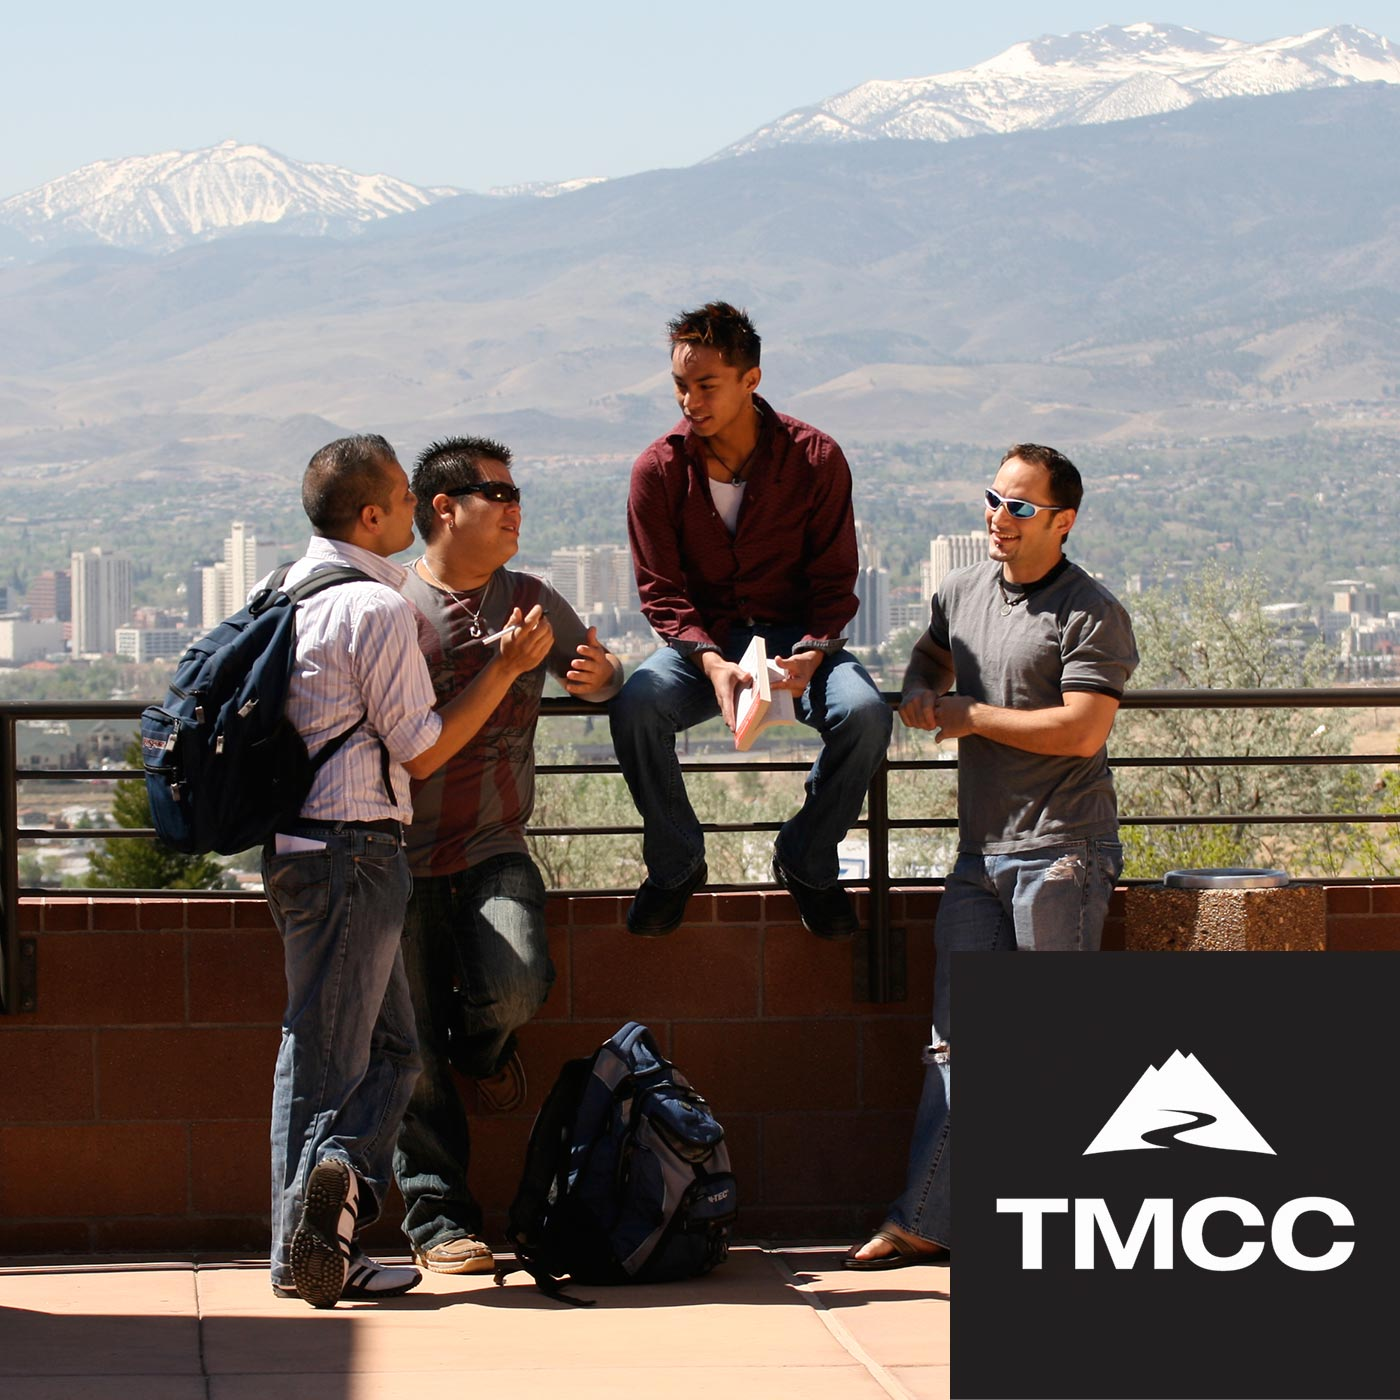 TMCC Holiday Message - 2018